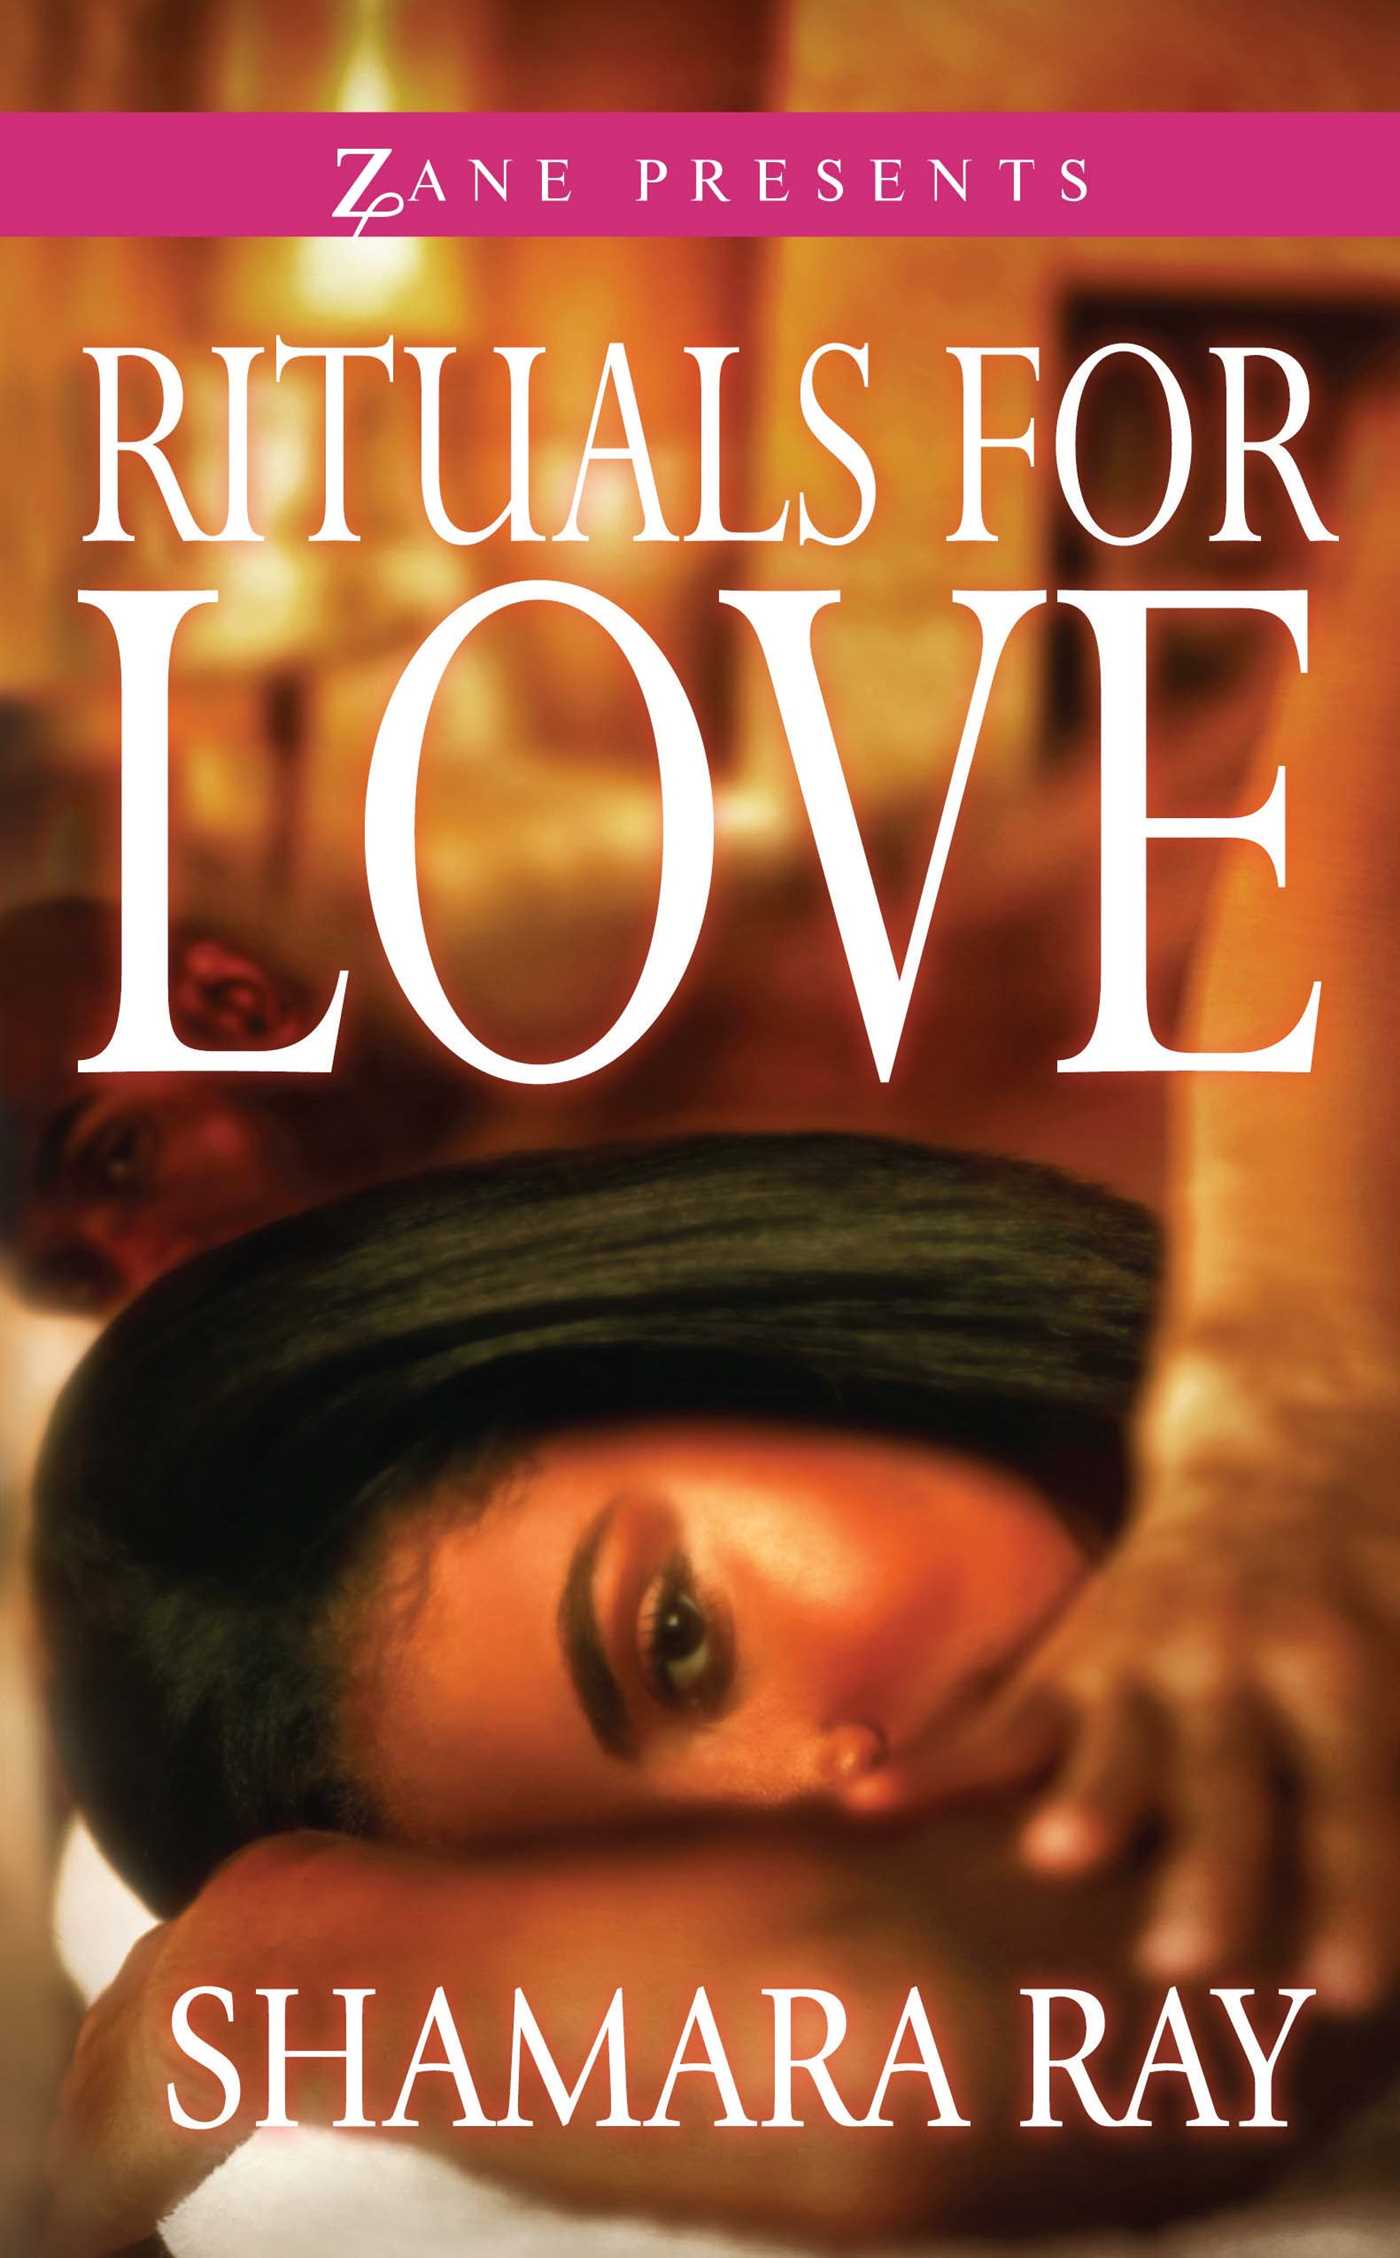 Rituals for love 9781593095864 hr